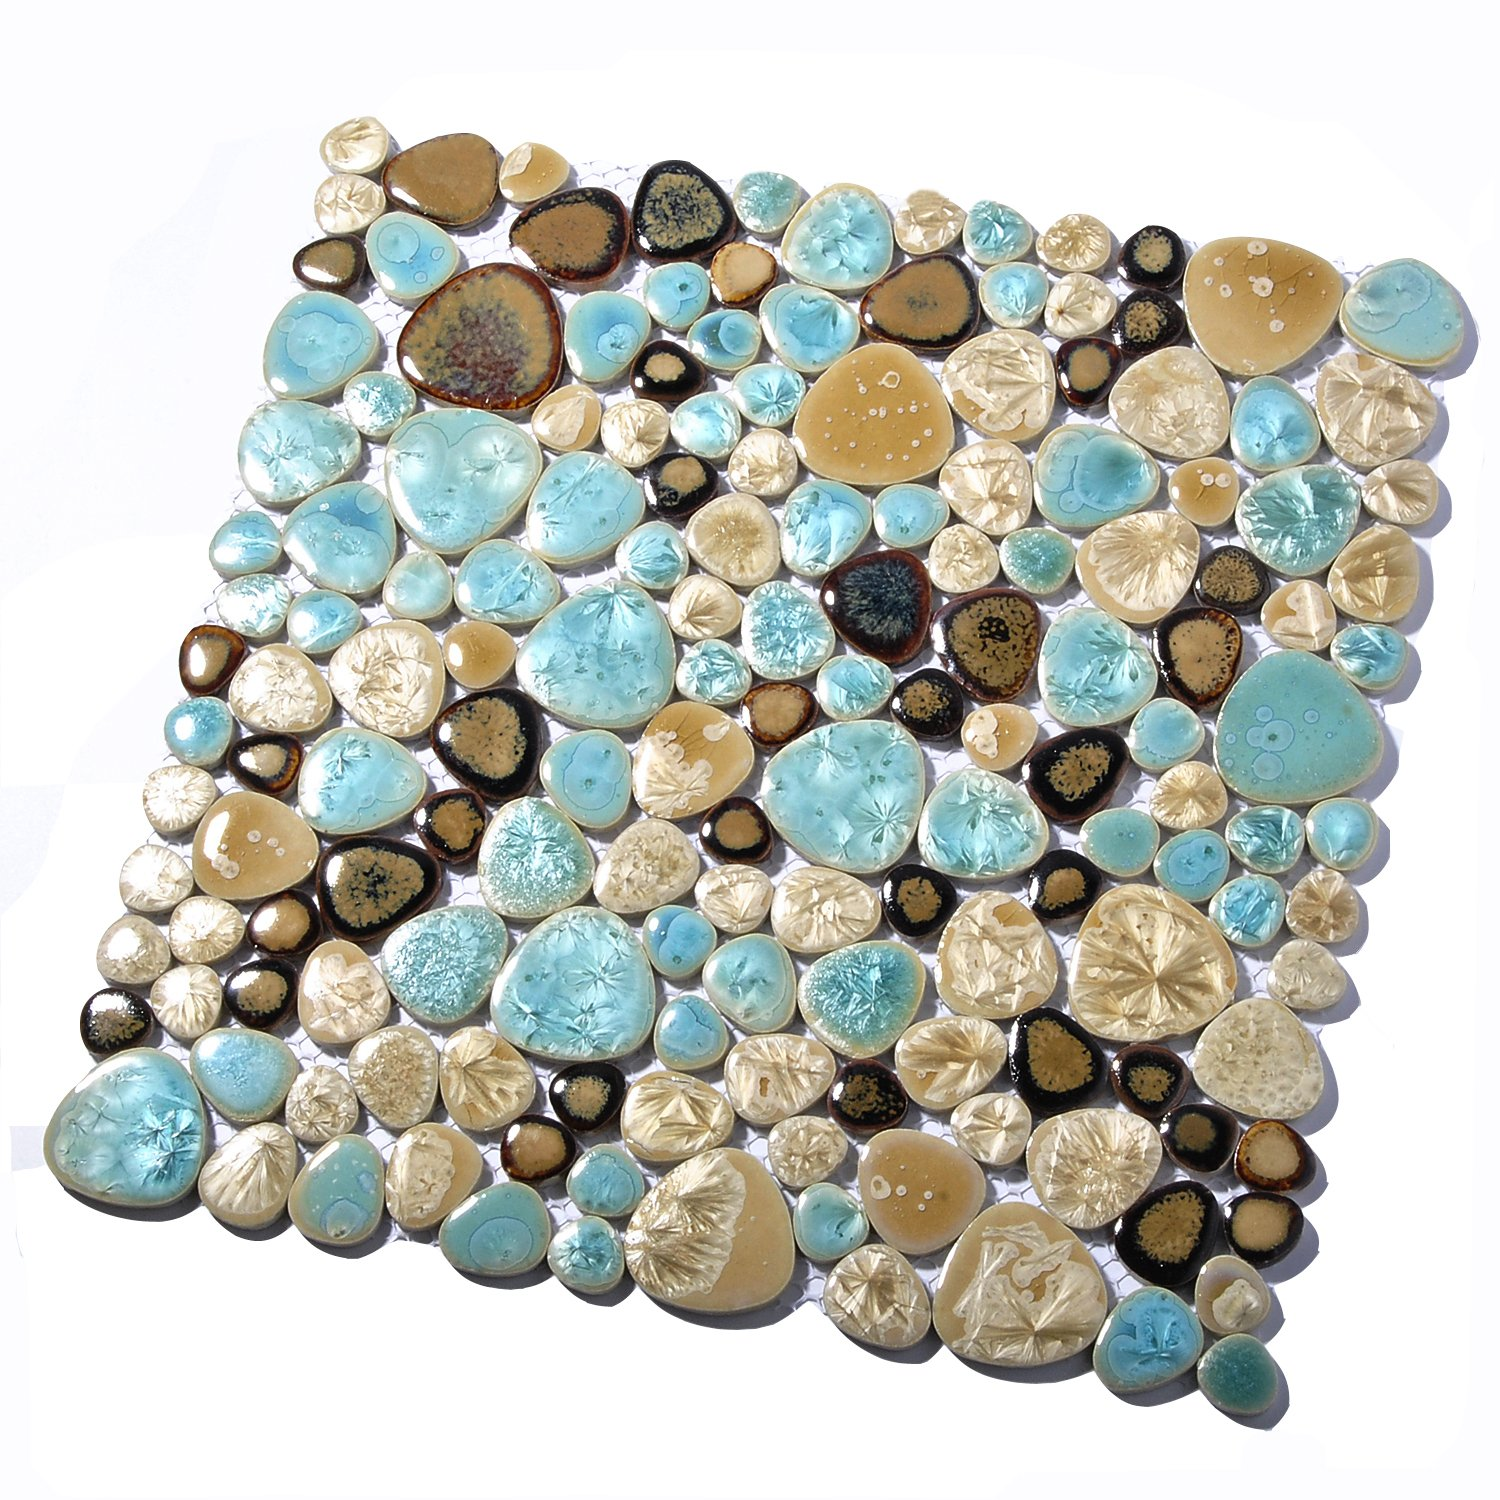 Amazon.com: Pebble Porcelain Tile Fambe Turquoise Green Beige Shower Floor  Pool Alley Tiles Mosaic TSTGPT005 (11 Square Feet): Home Improvement